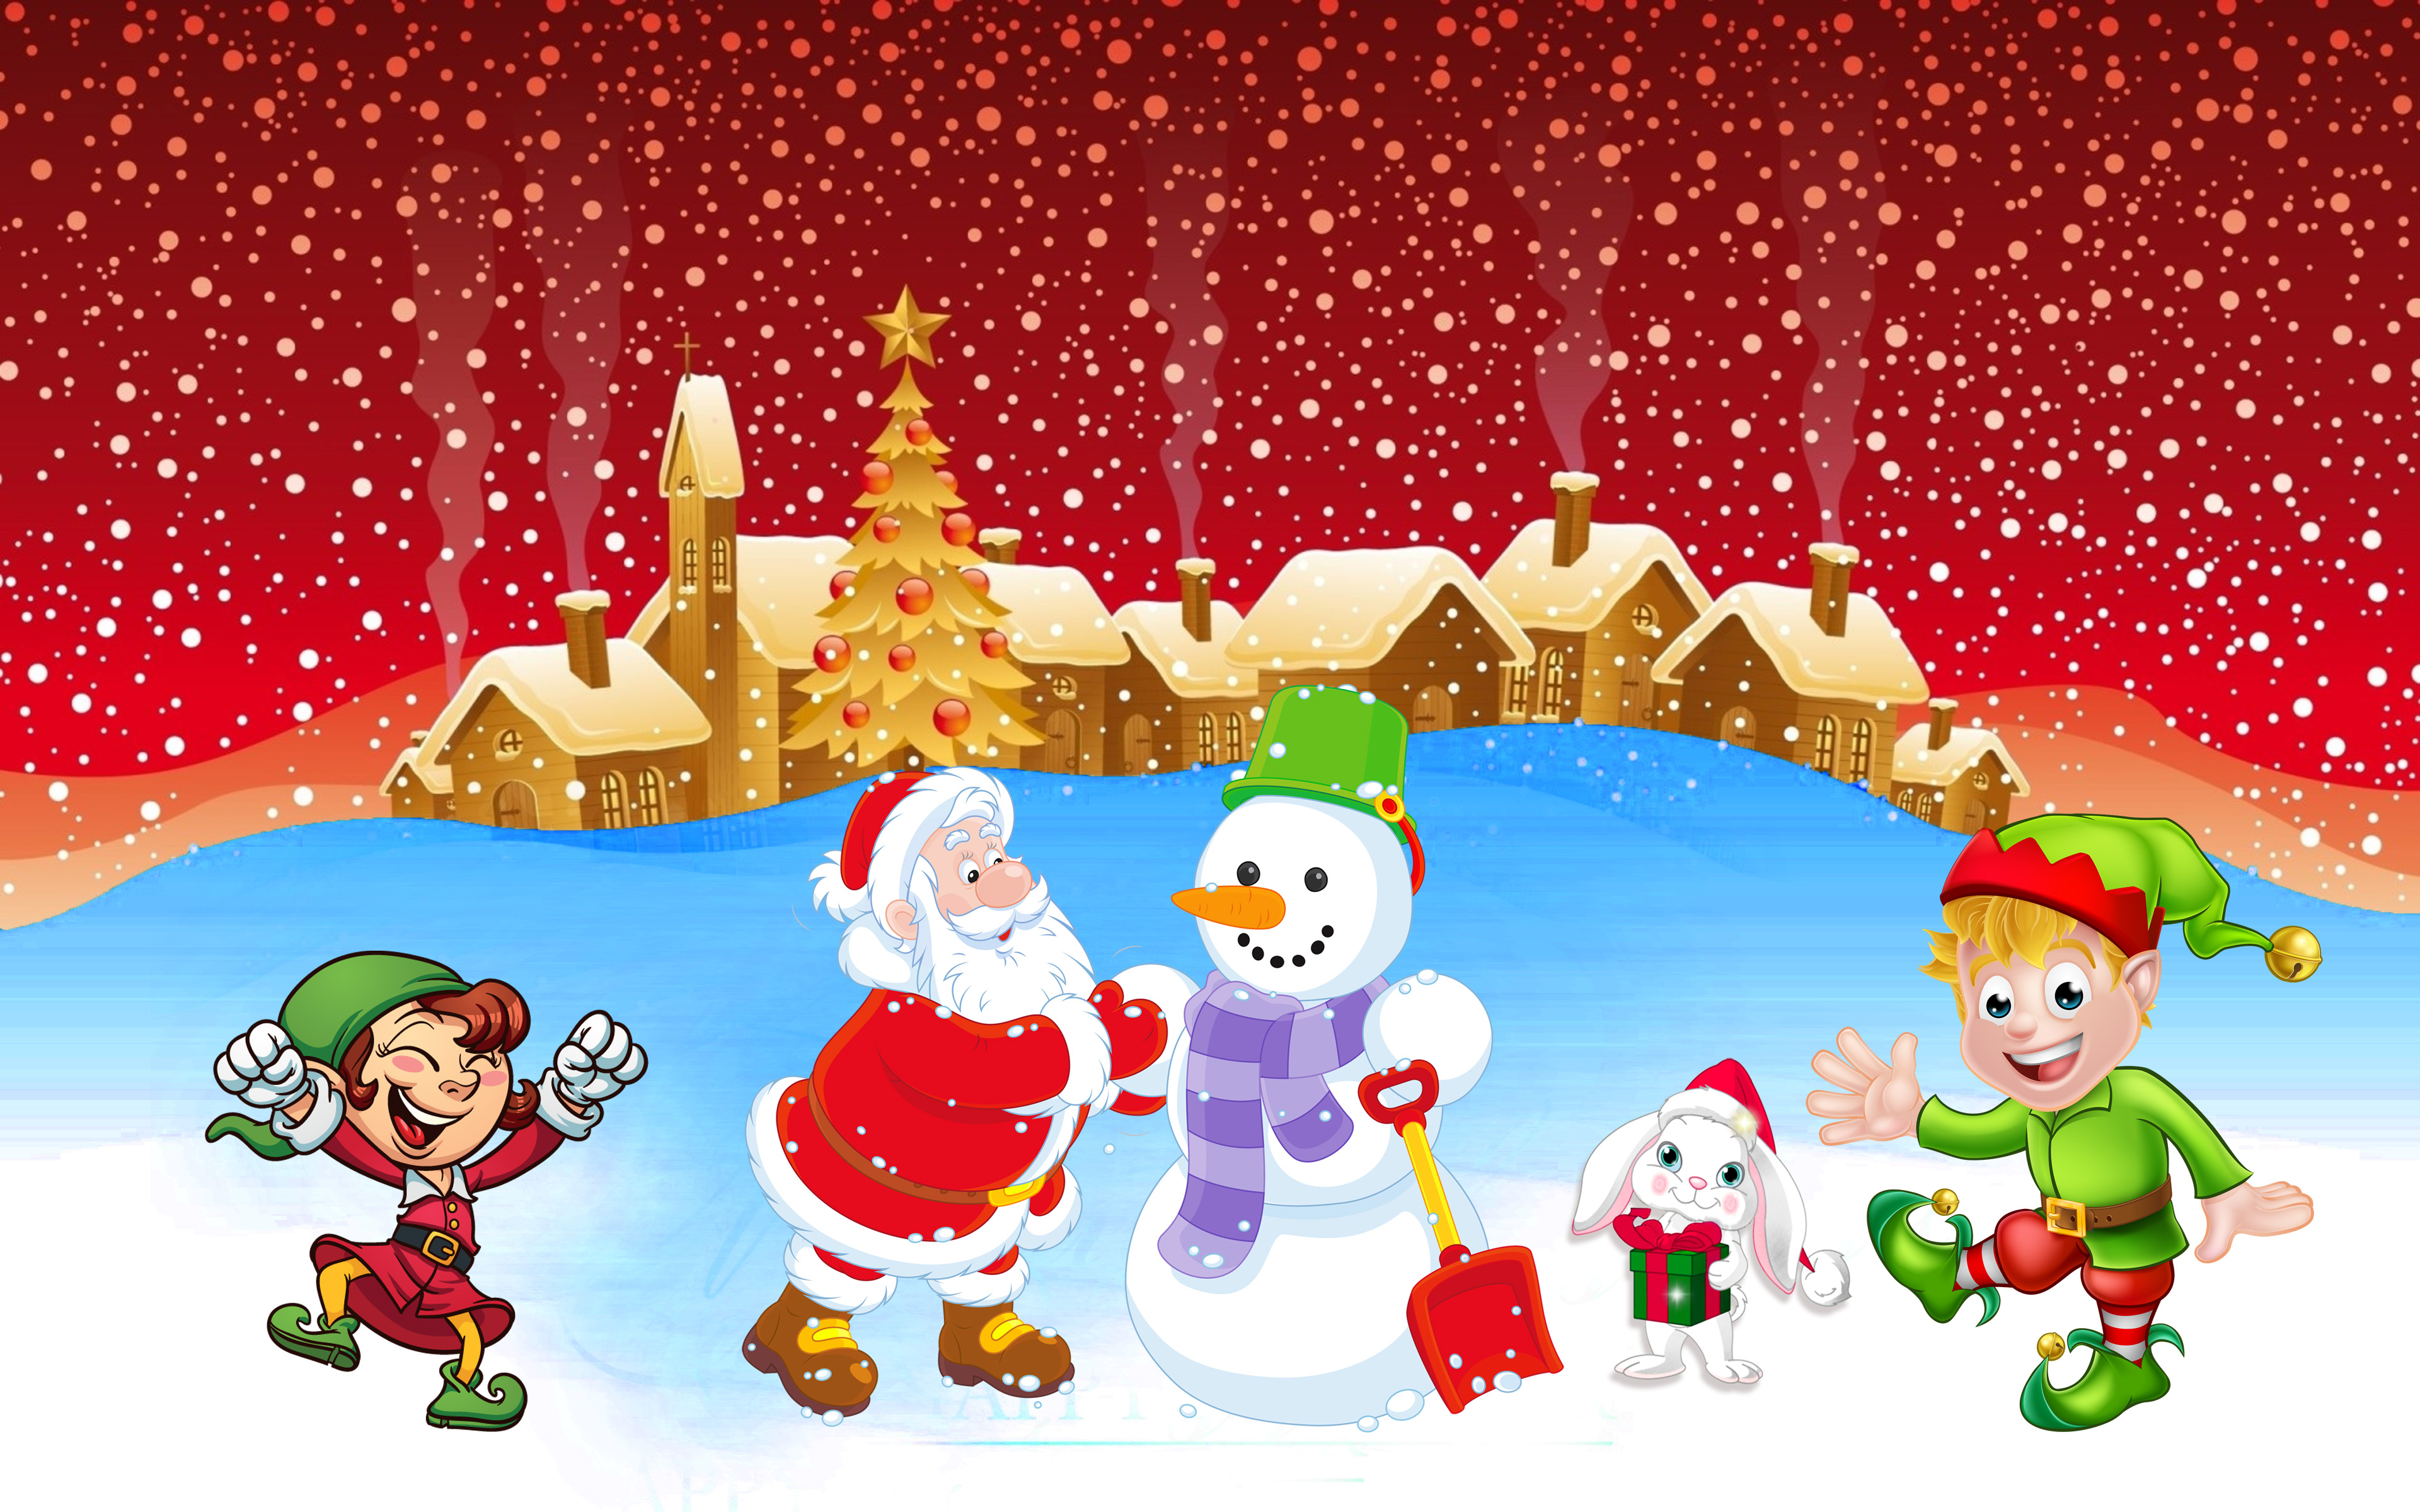 Merry Christmas & A Happy New Year 2020 Wishes , HD Wallpaper & Backgrounds